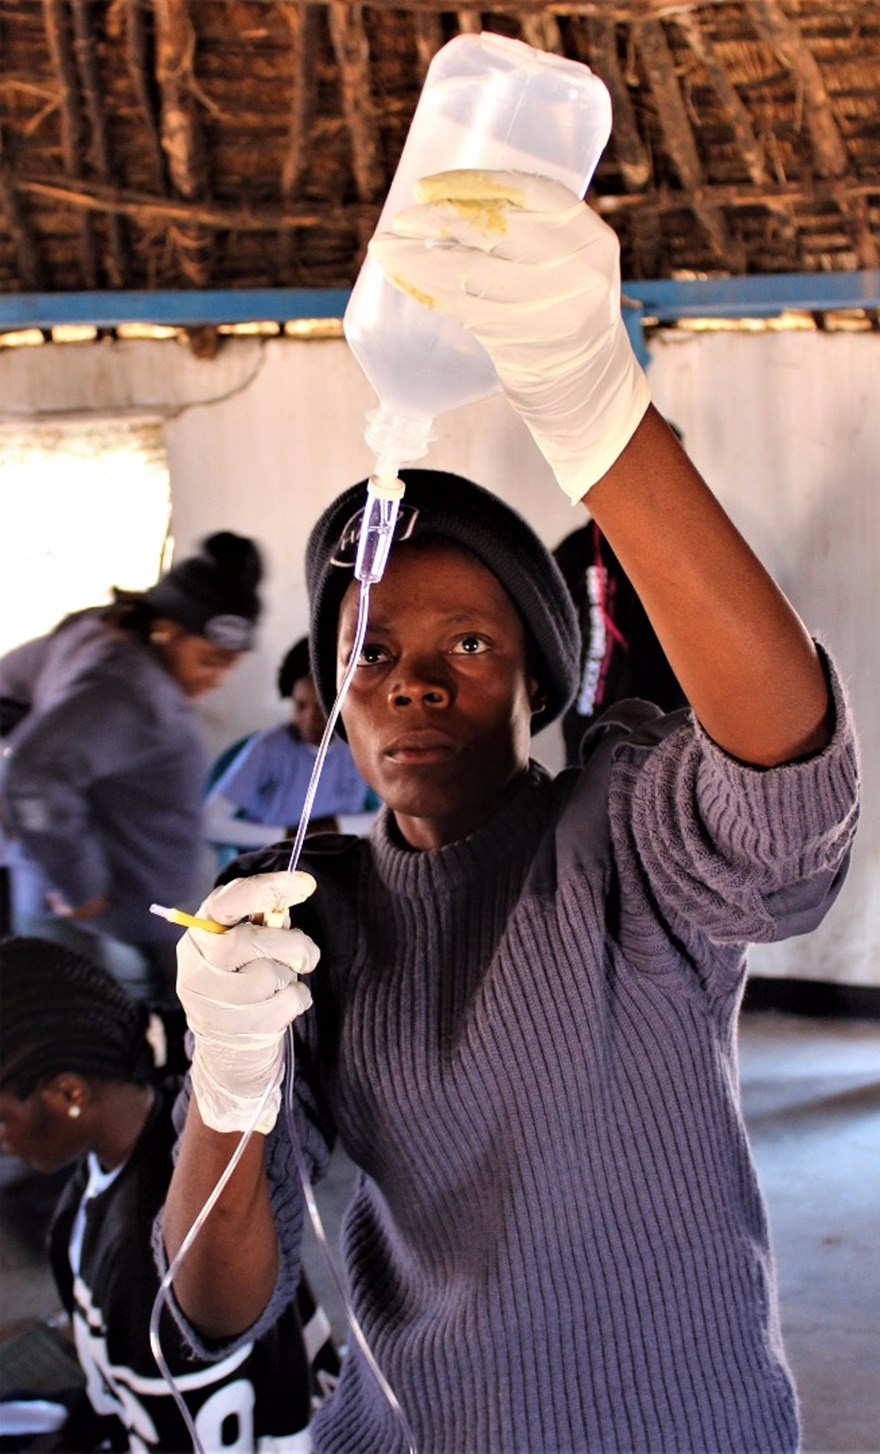 A female Paramedic-Deminer trainee prepares an IV drip during medical training.